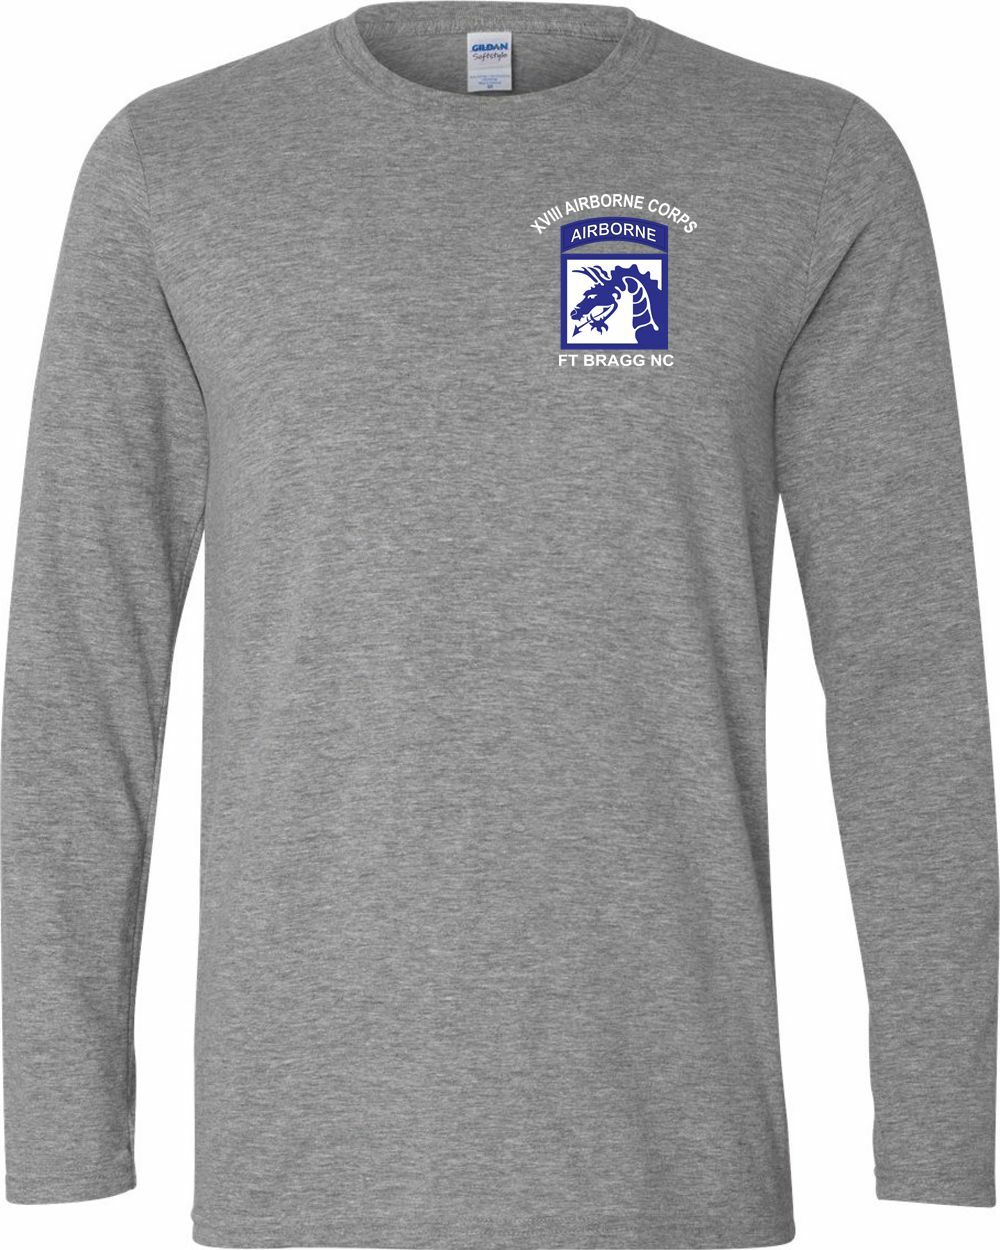 18th Airborne Corps Long-Sleeve Cotton Shirt-12942